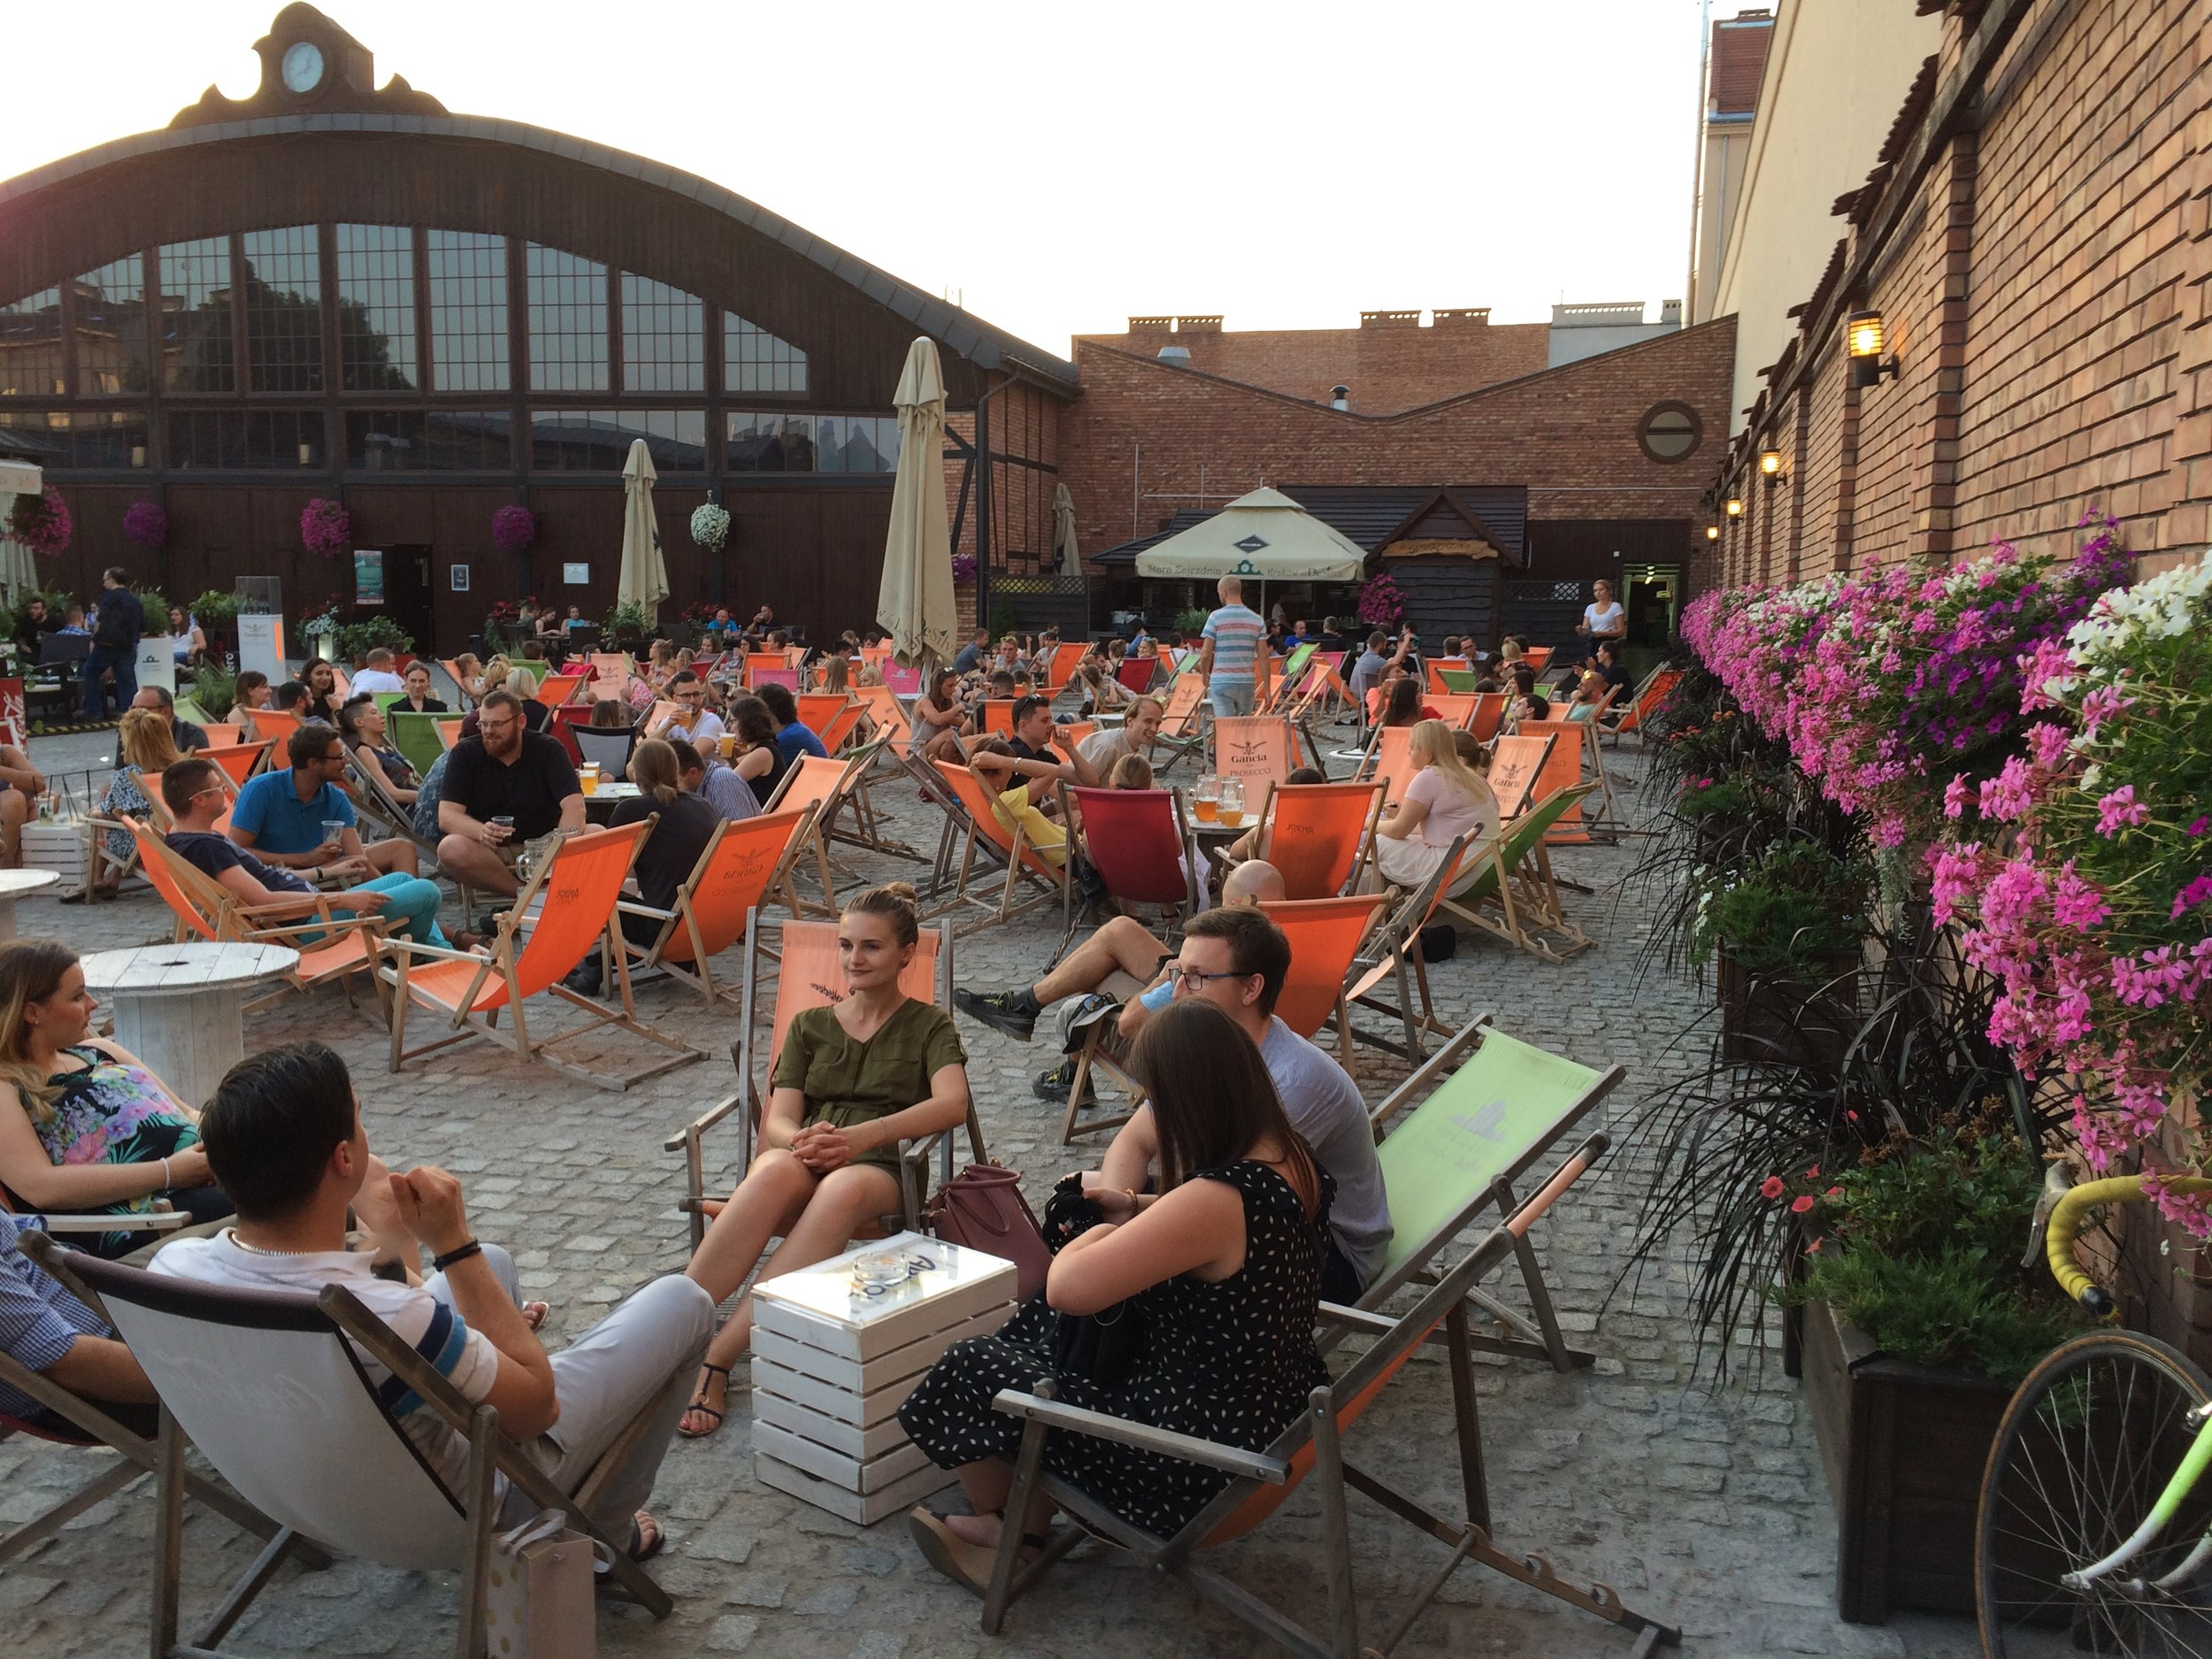 Deck chairs (and planters!) in Krakow, Poland (Photo by Sarah Kobos)